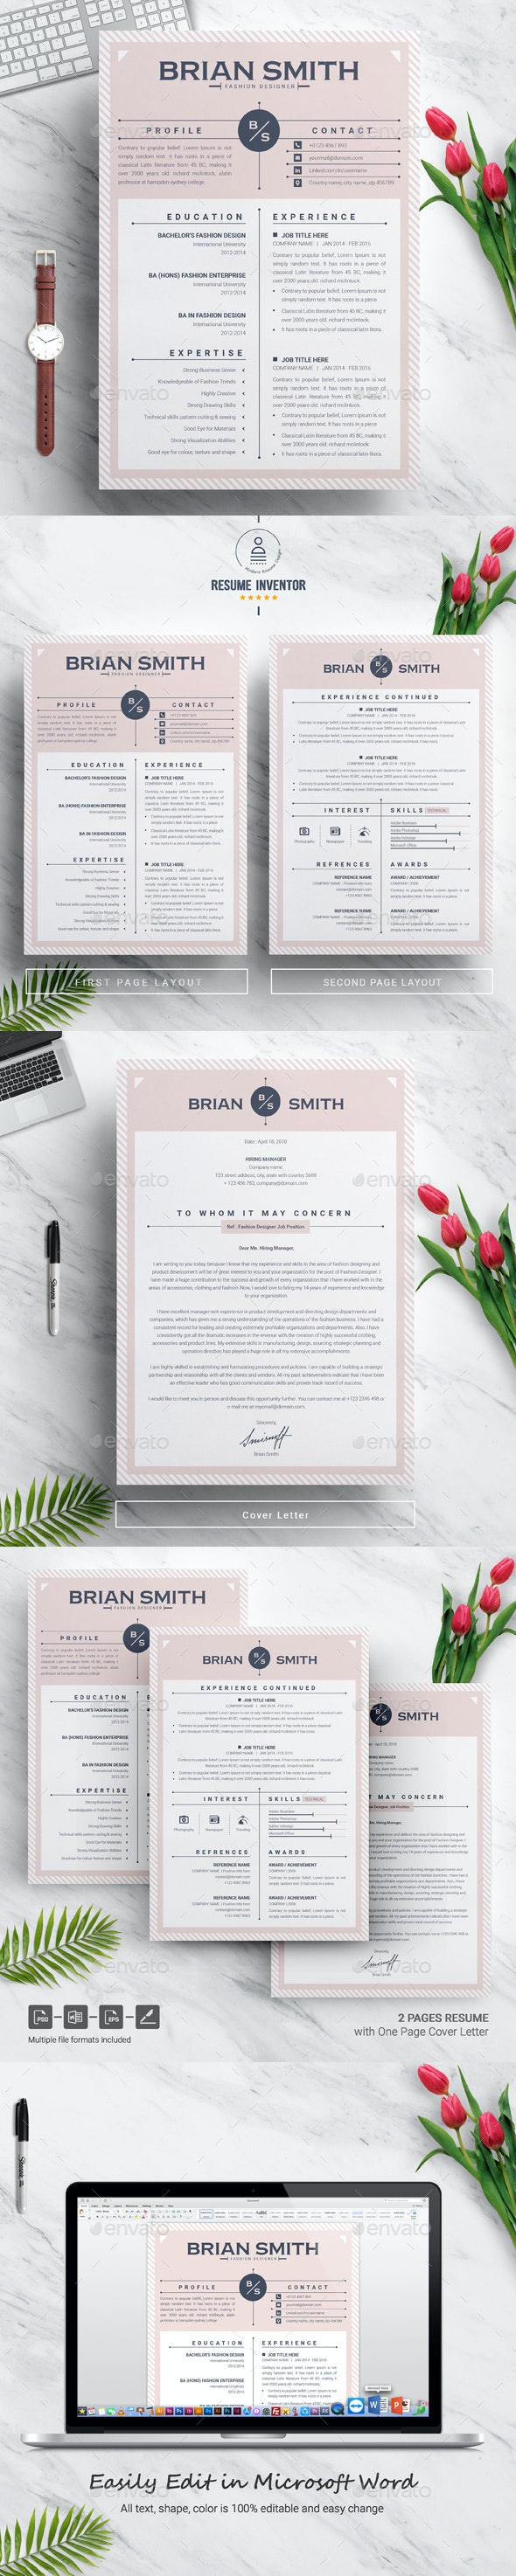 Resume Template   Modern & Creative Professional Resume Template for Word - Resumes Stationery